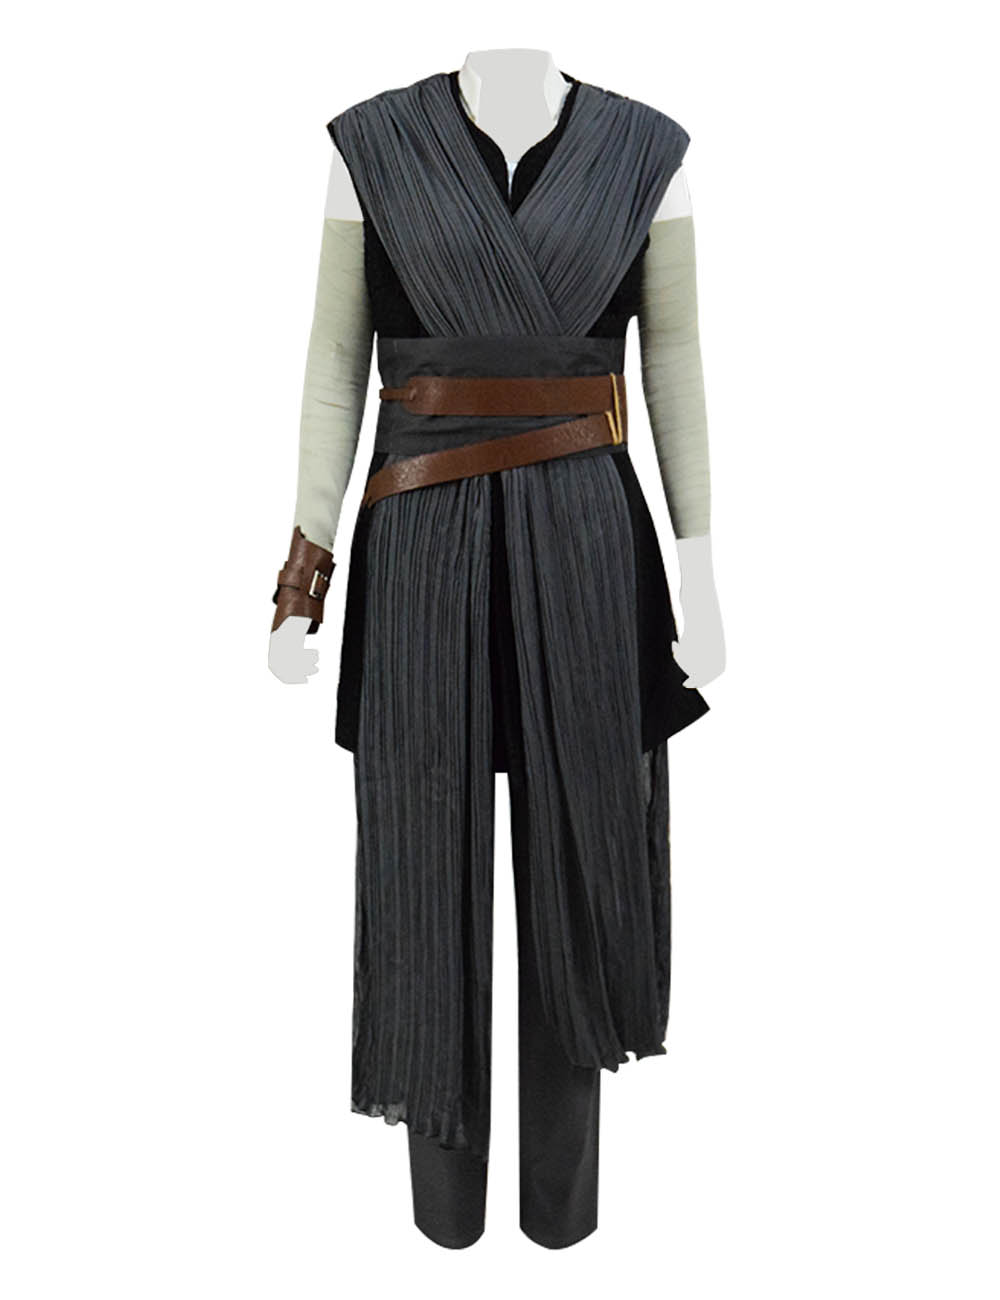 Star Wars VIII The Last Jedi Rey Cosplay Costume Battle Suit Women Cosplay Cosdaddy